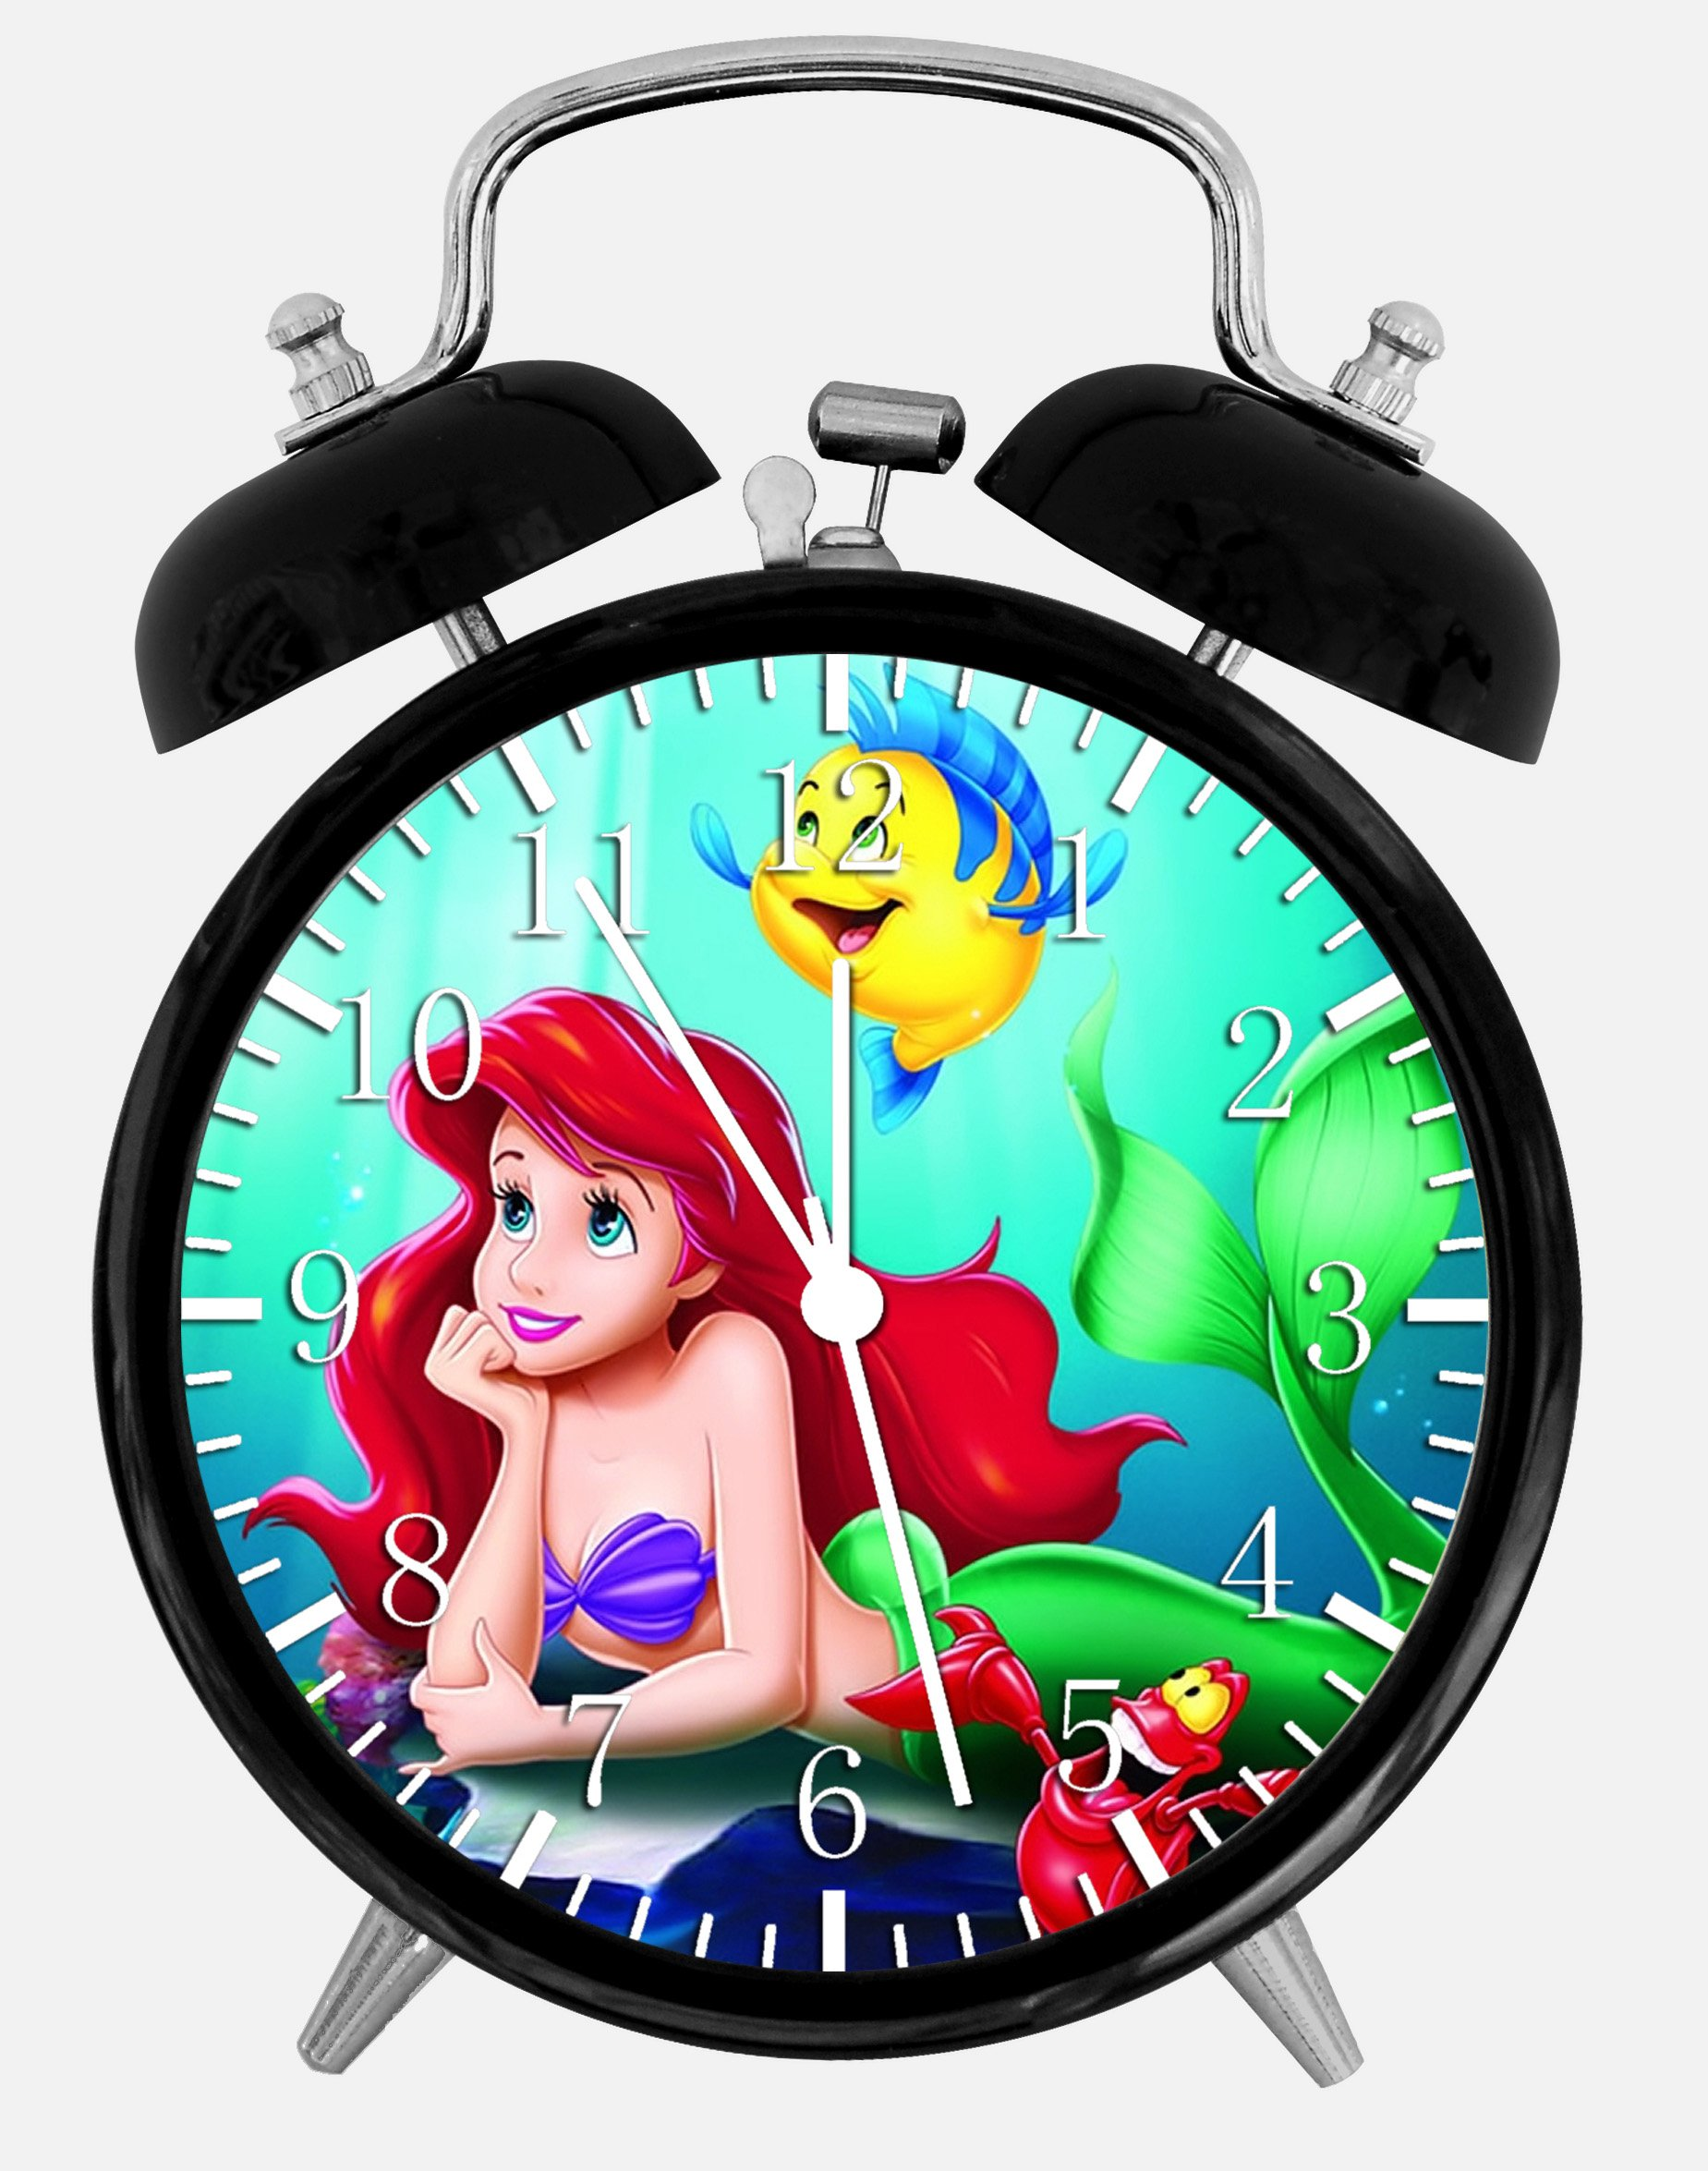 The Little Mermaid Ariel Alarm Desk Clock 3.75'' Home or Office Decor E325 Nice For Gift